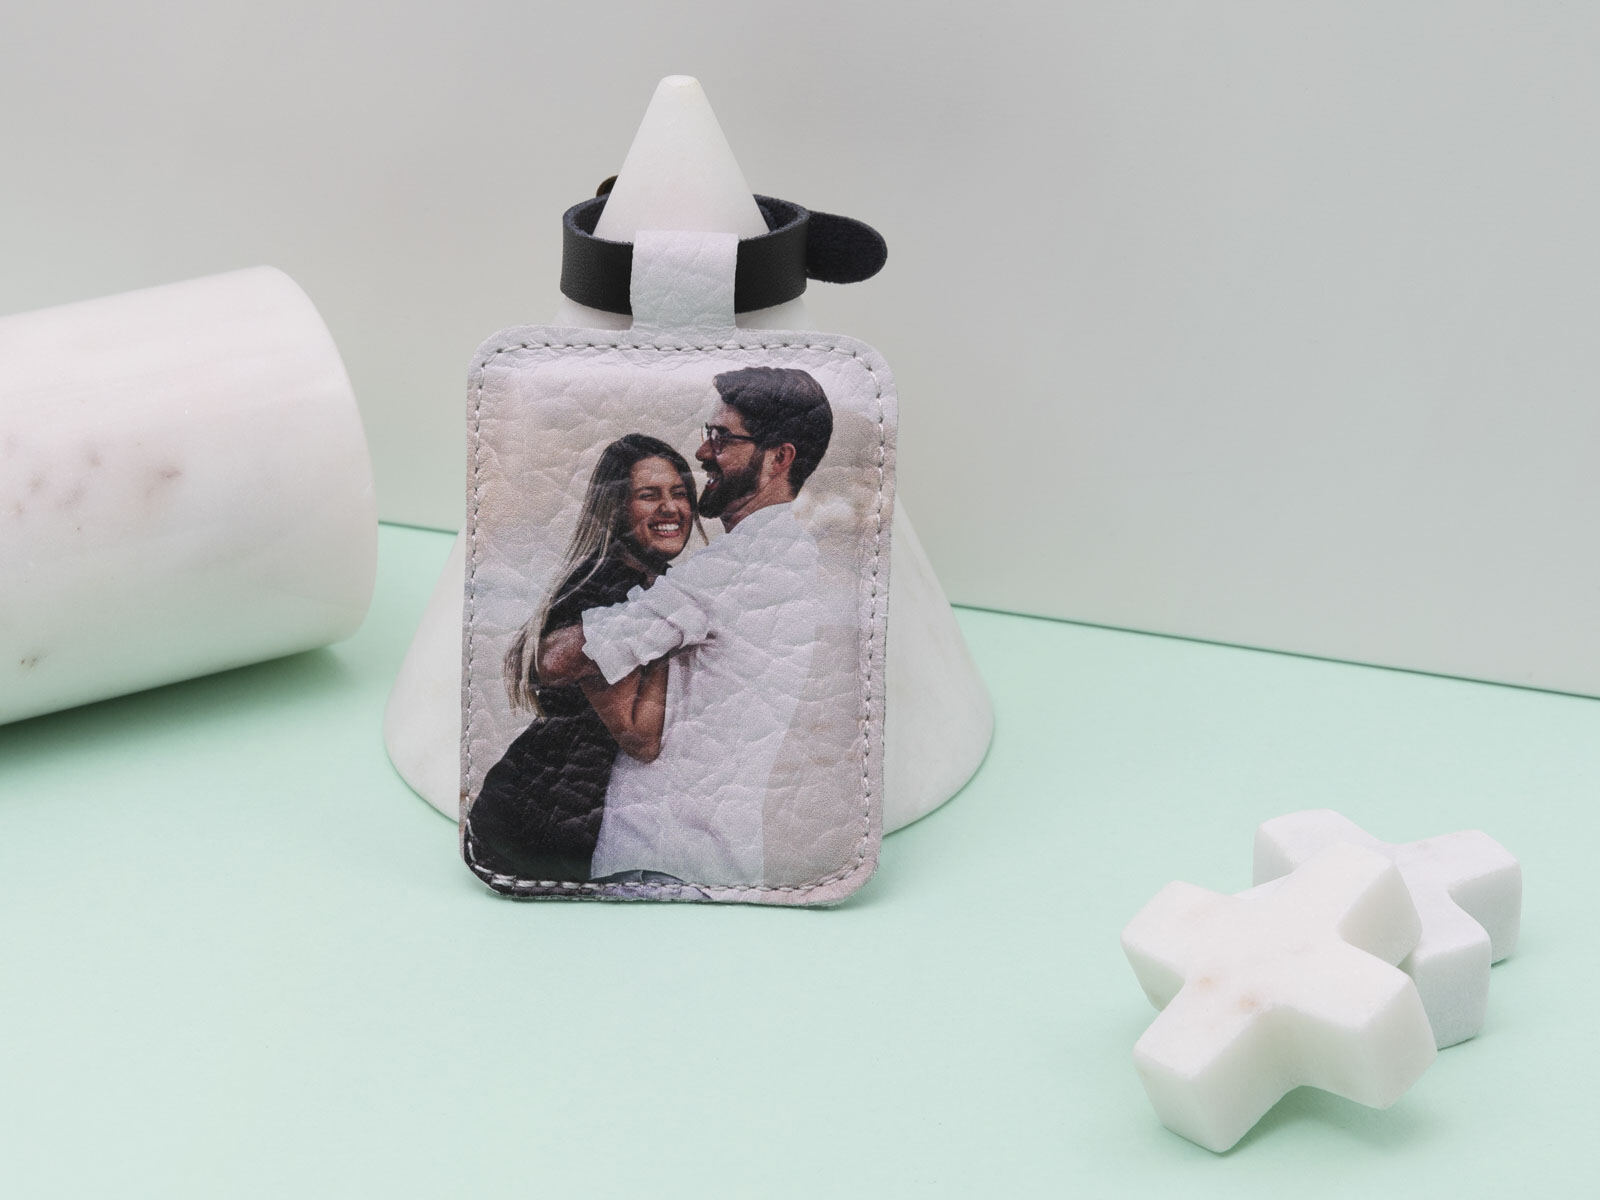 Personalized Gifts for the Bride